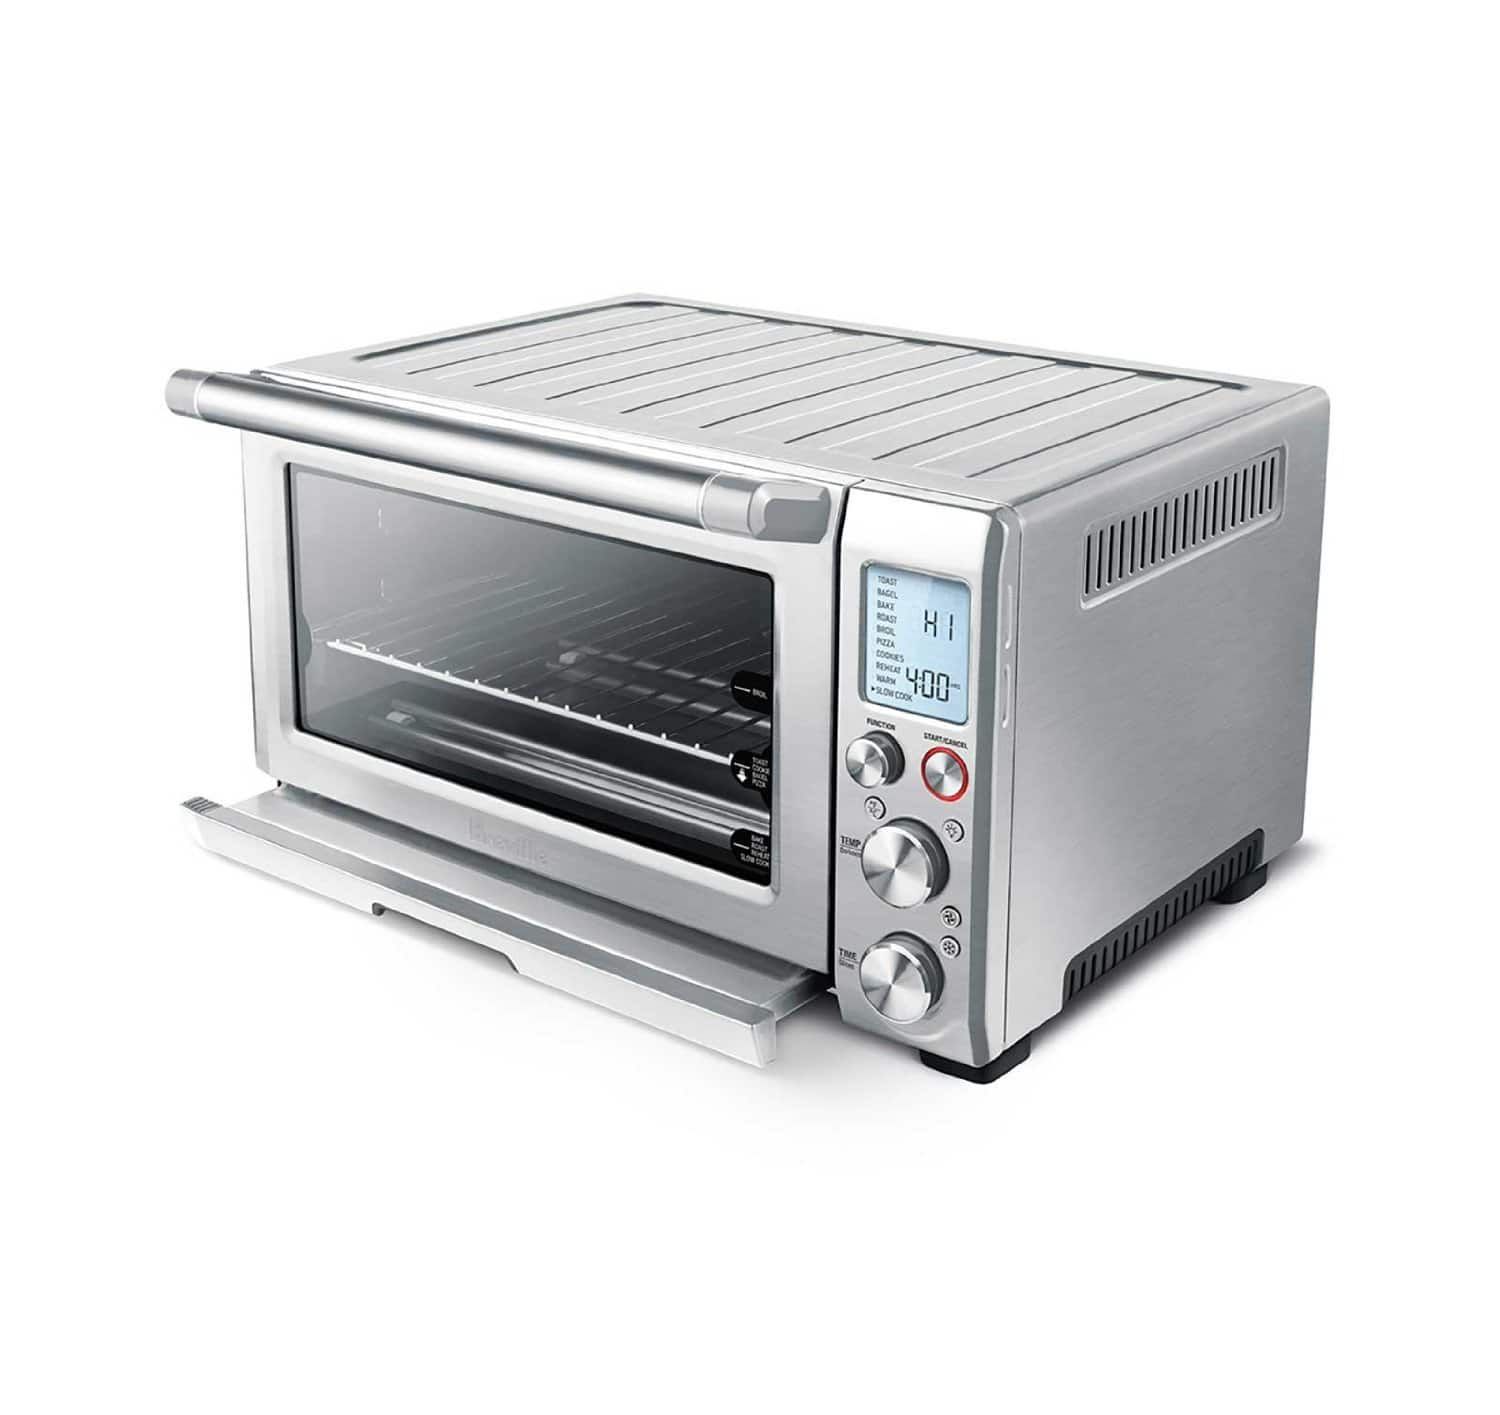 [BEST BUY] Breville -BOV845BSS Smart Oven PRO Convection $216 AC FS